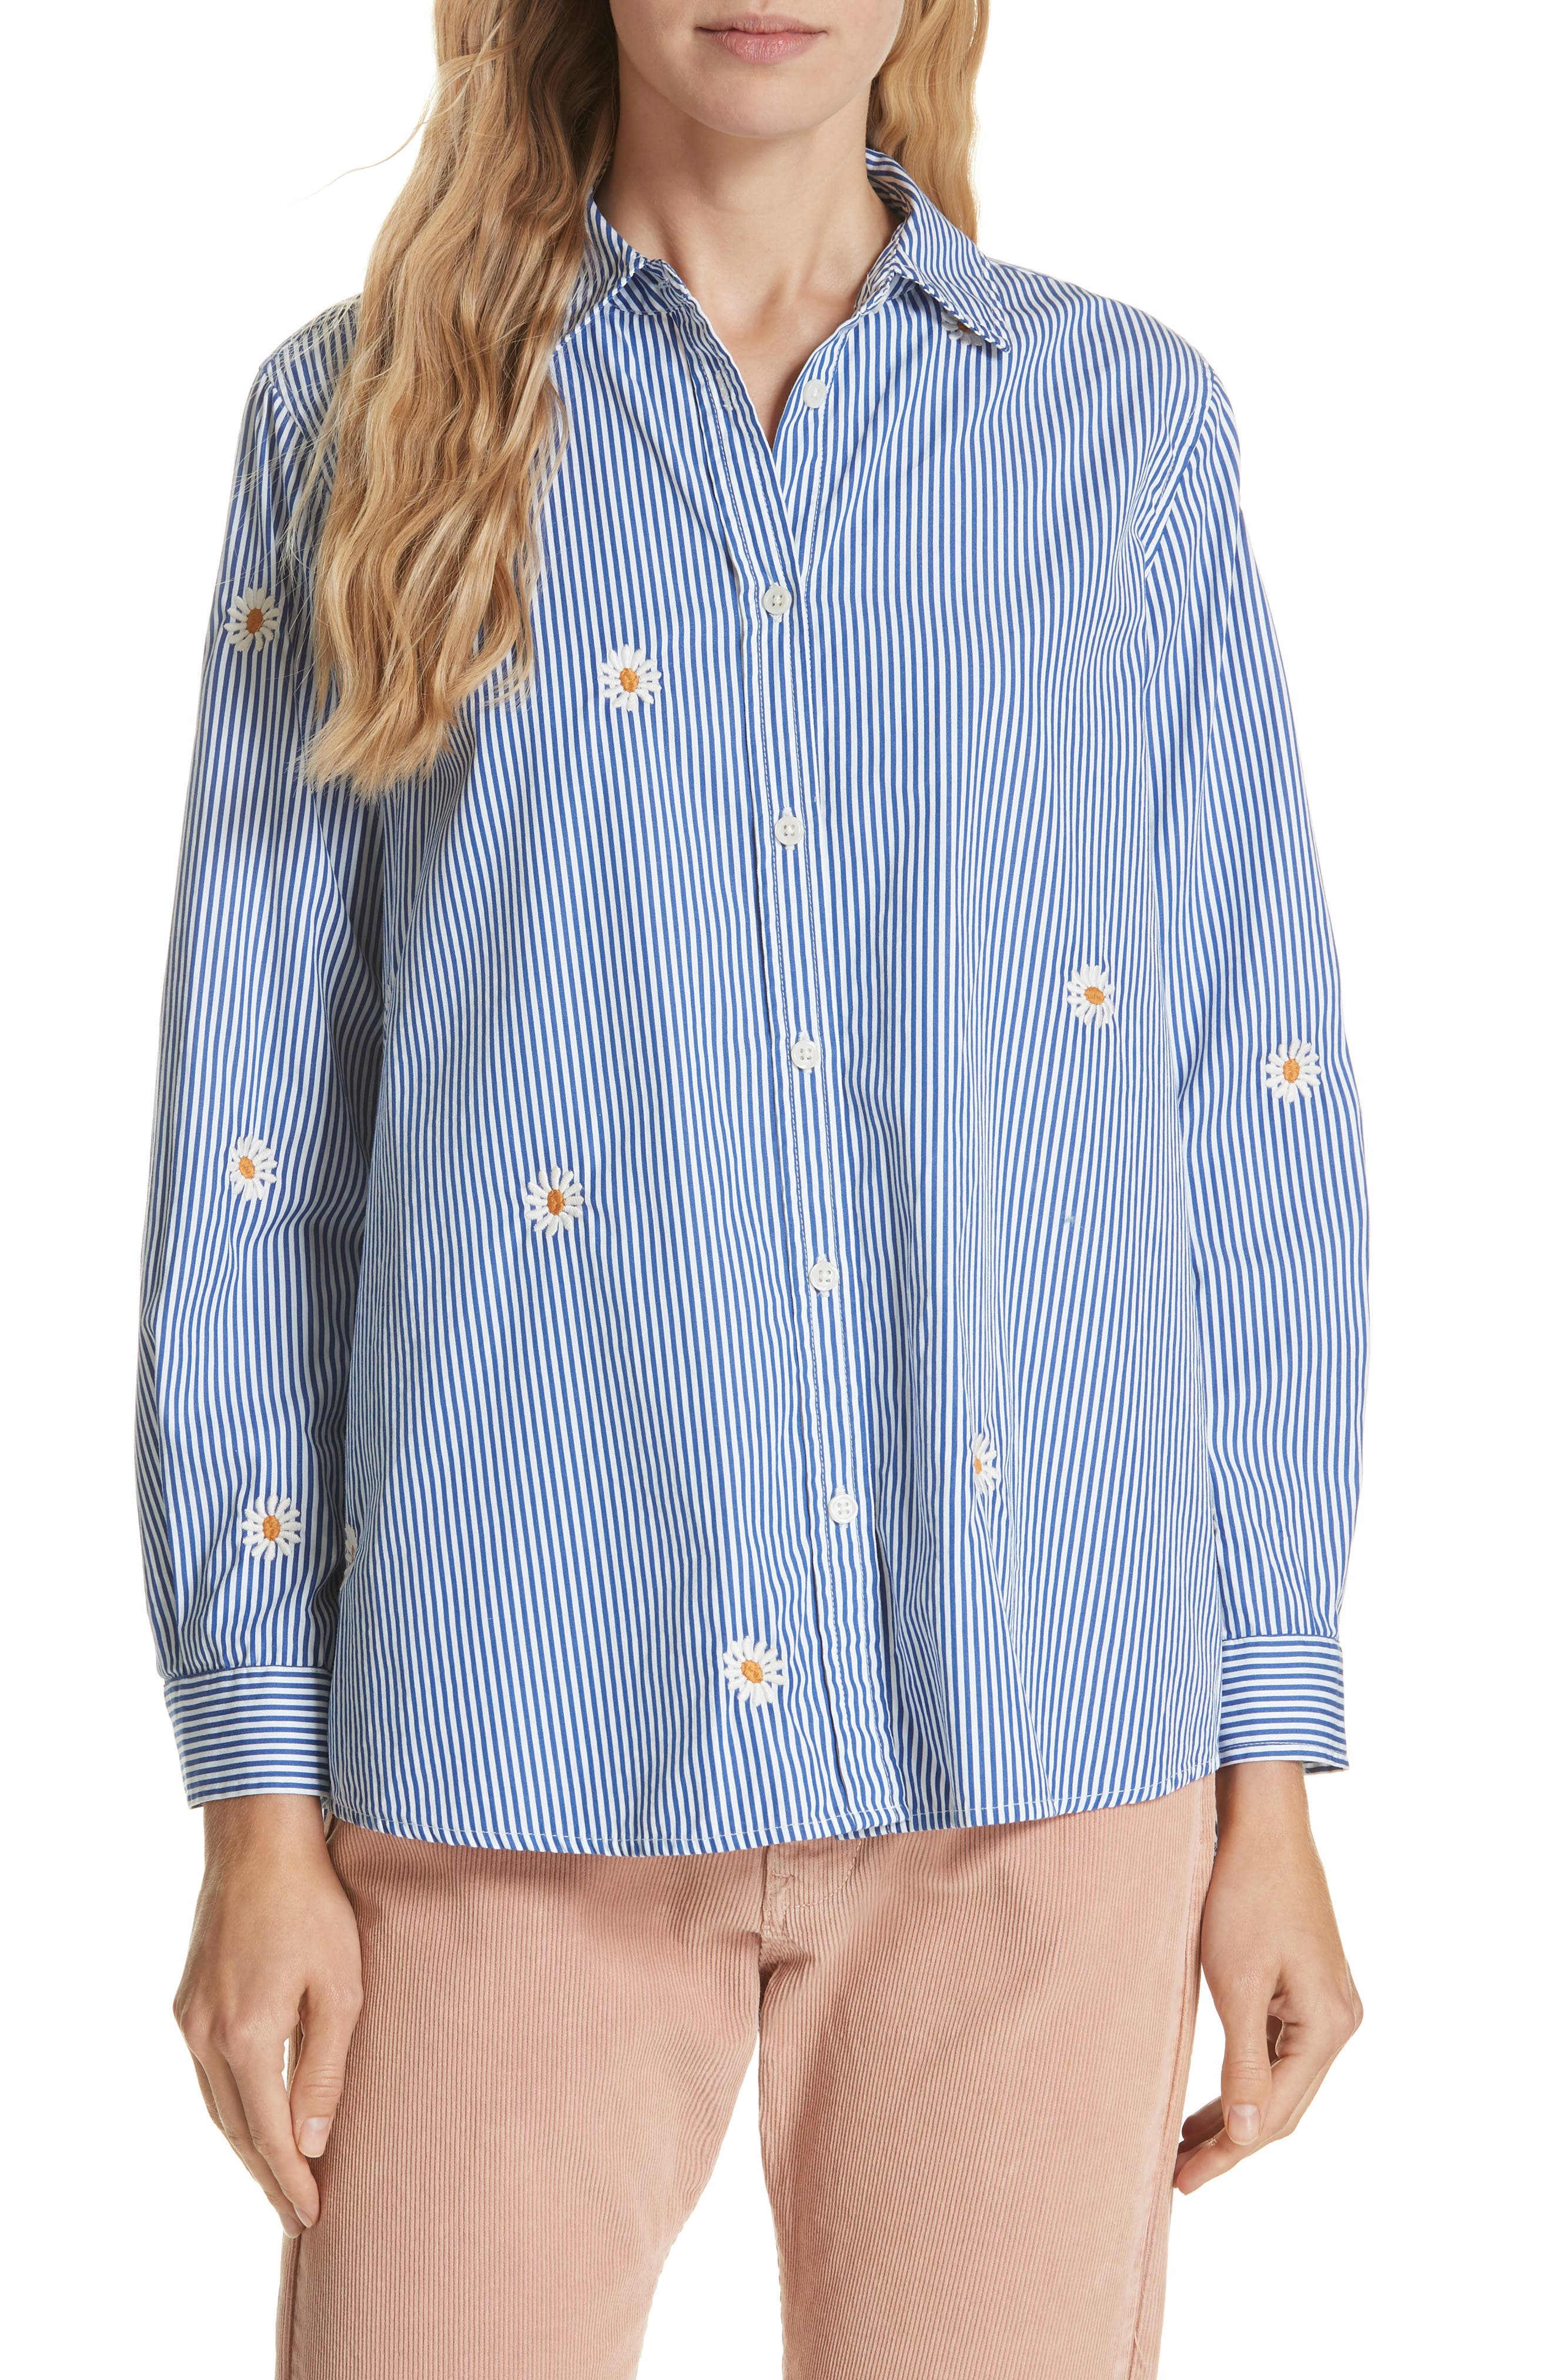 THE GREAT EMBROIDERED SWING OXFORD SHIRT